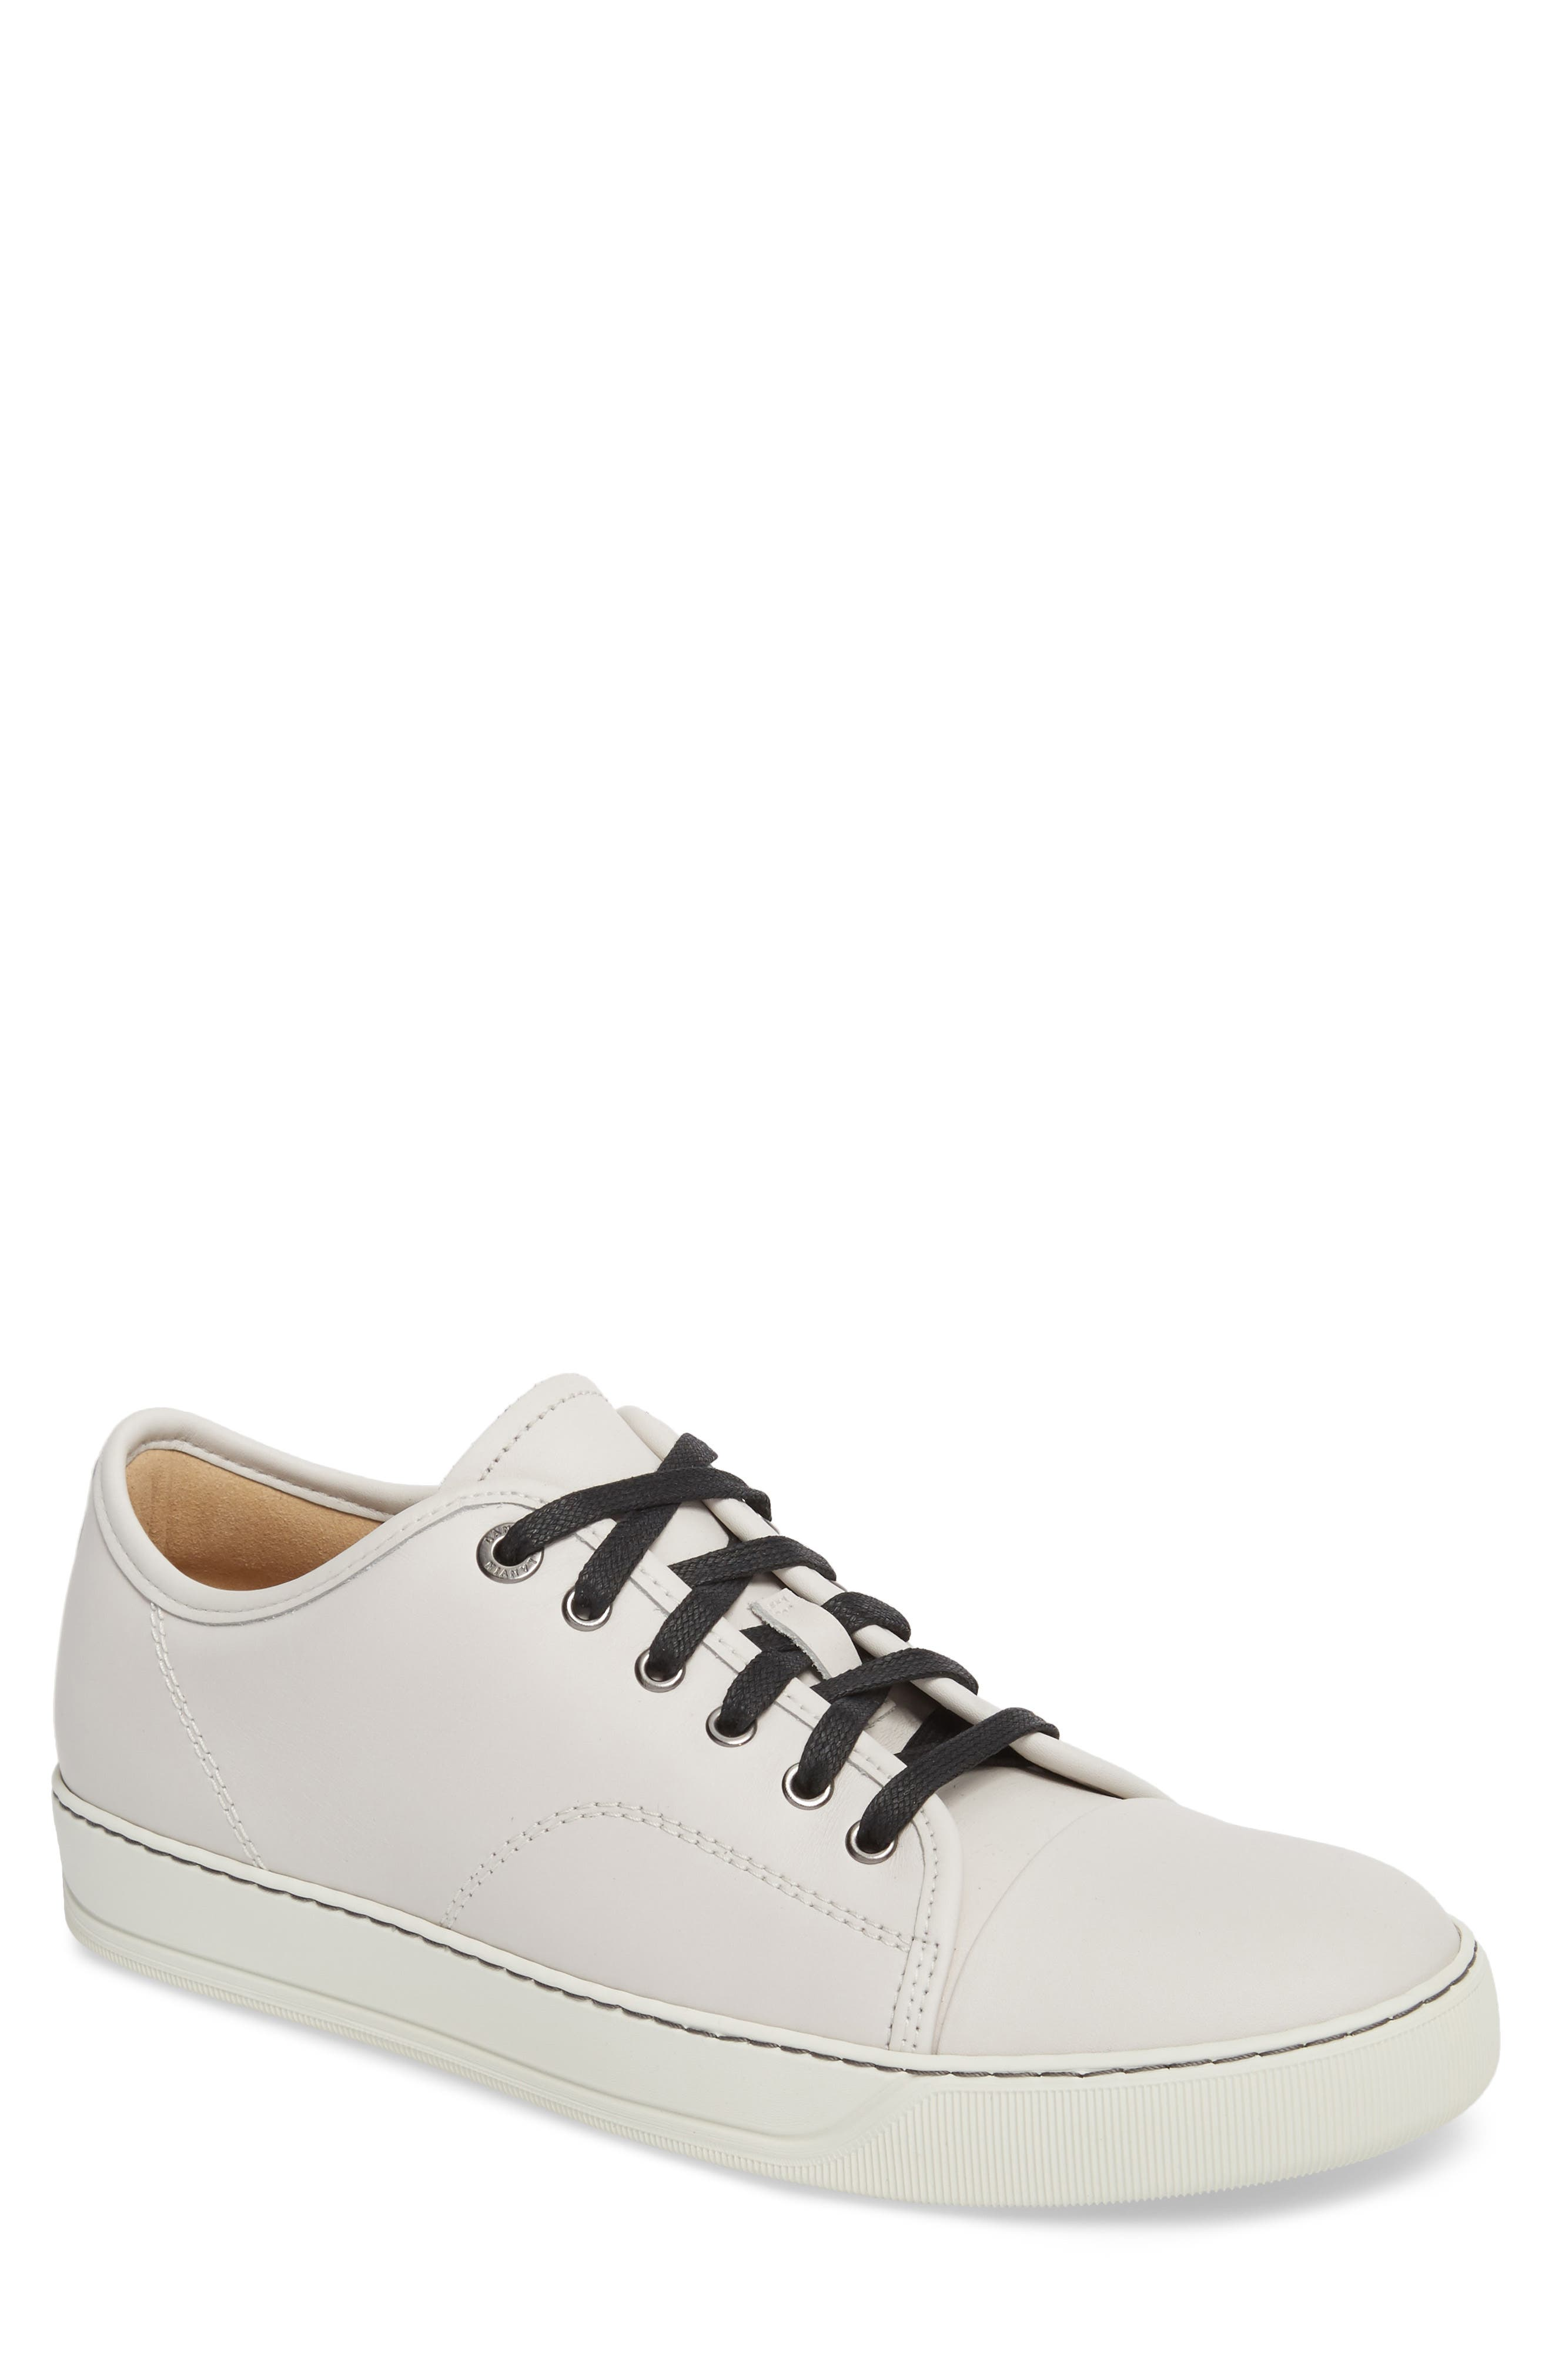 Low Top Sneaker,                             Main thumbnail 1, color,                             Chalk Leather